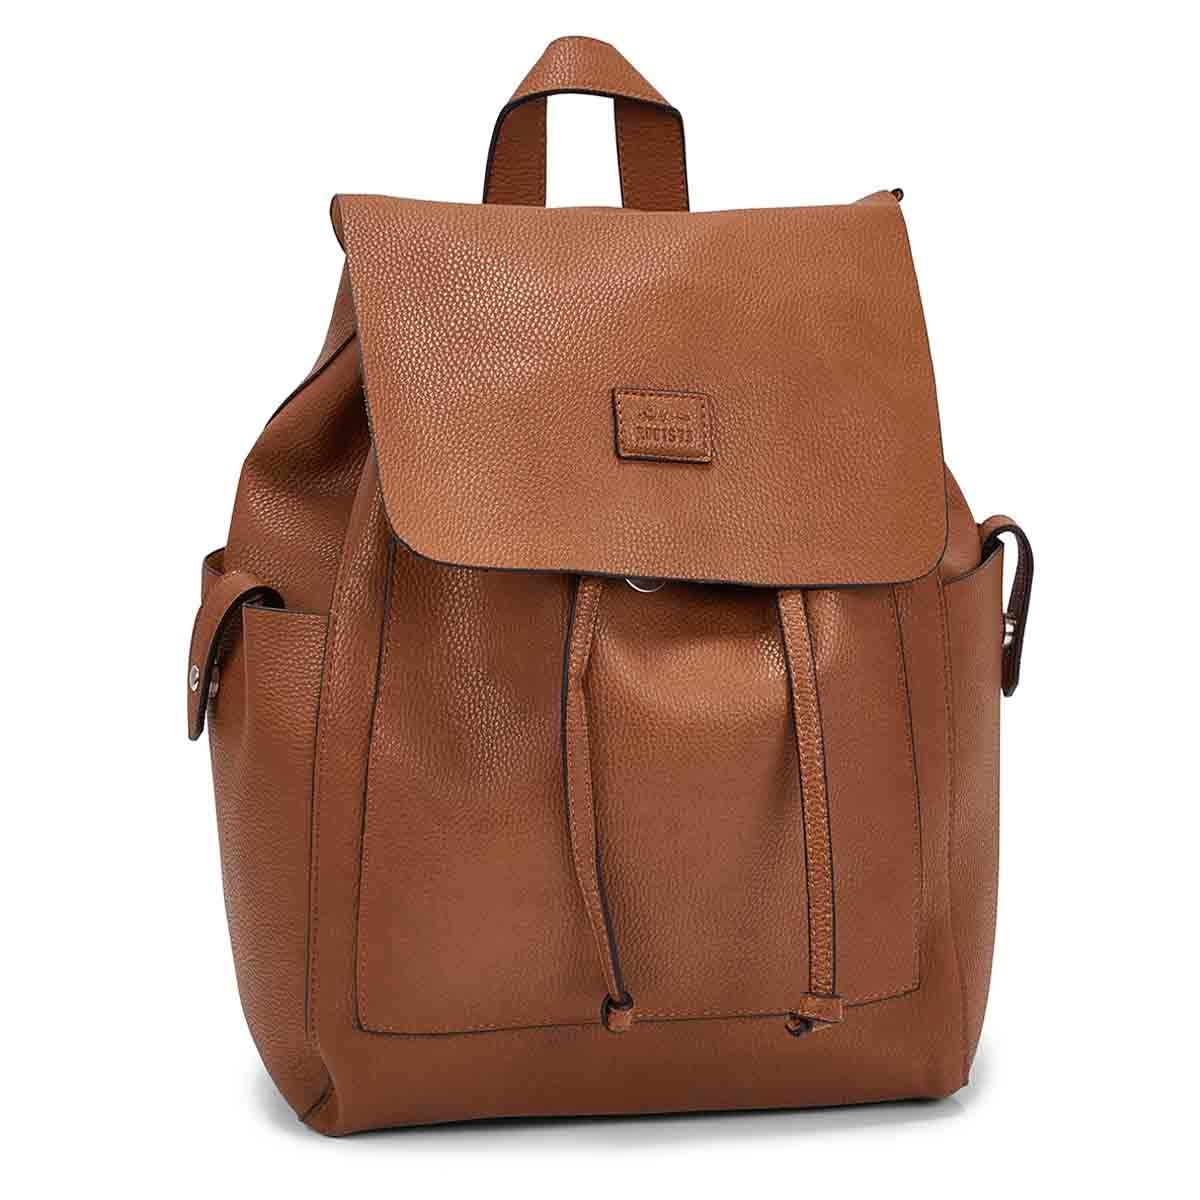 Women's R5545 cognac draw string backpack